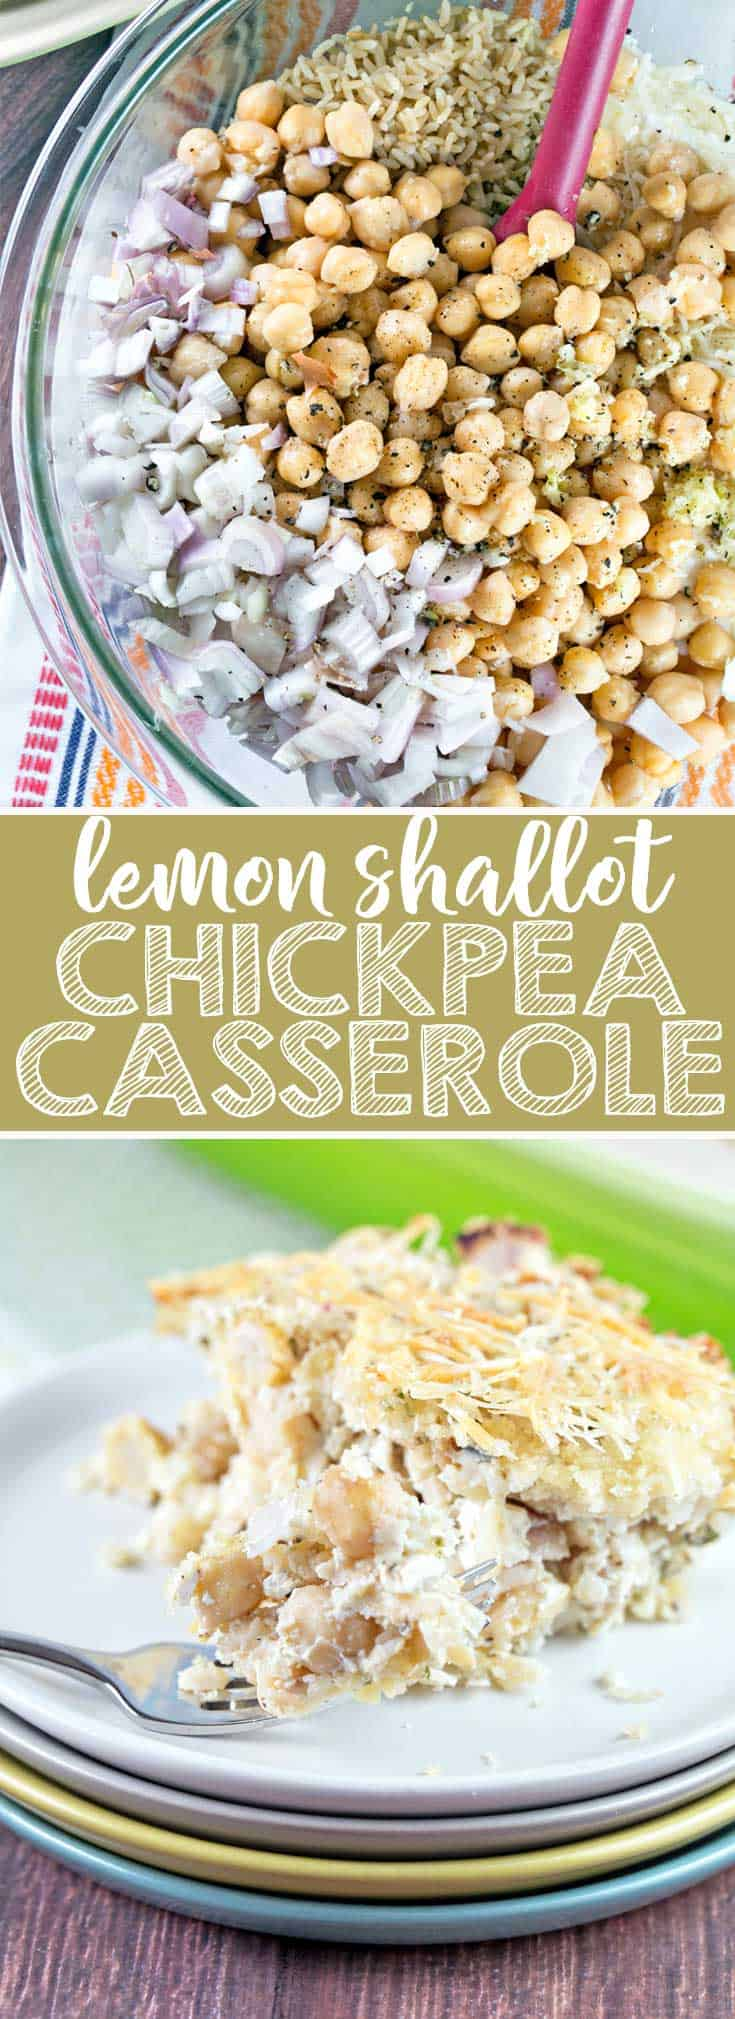 Lemon Shallot Chickpea Casserole: a hearty yet light one-dish vegetarian casserole, full of protein and fresh flavors. Freezer friendly! {Bunsen Burner Bakery} #vegetarian #dinner #casserole #chickpeas